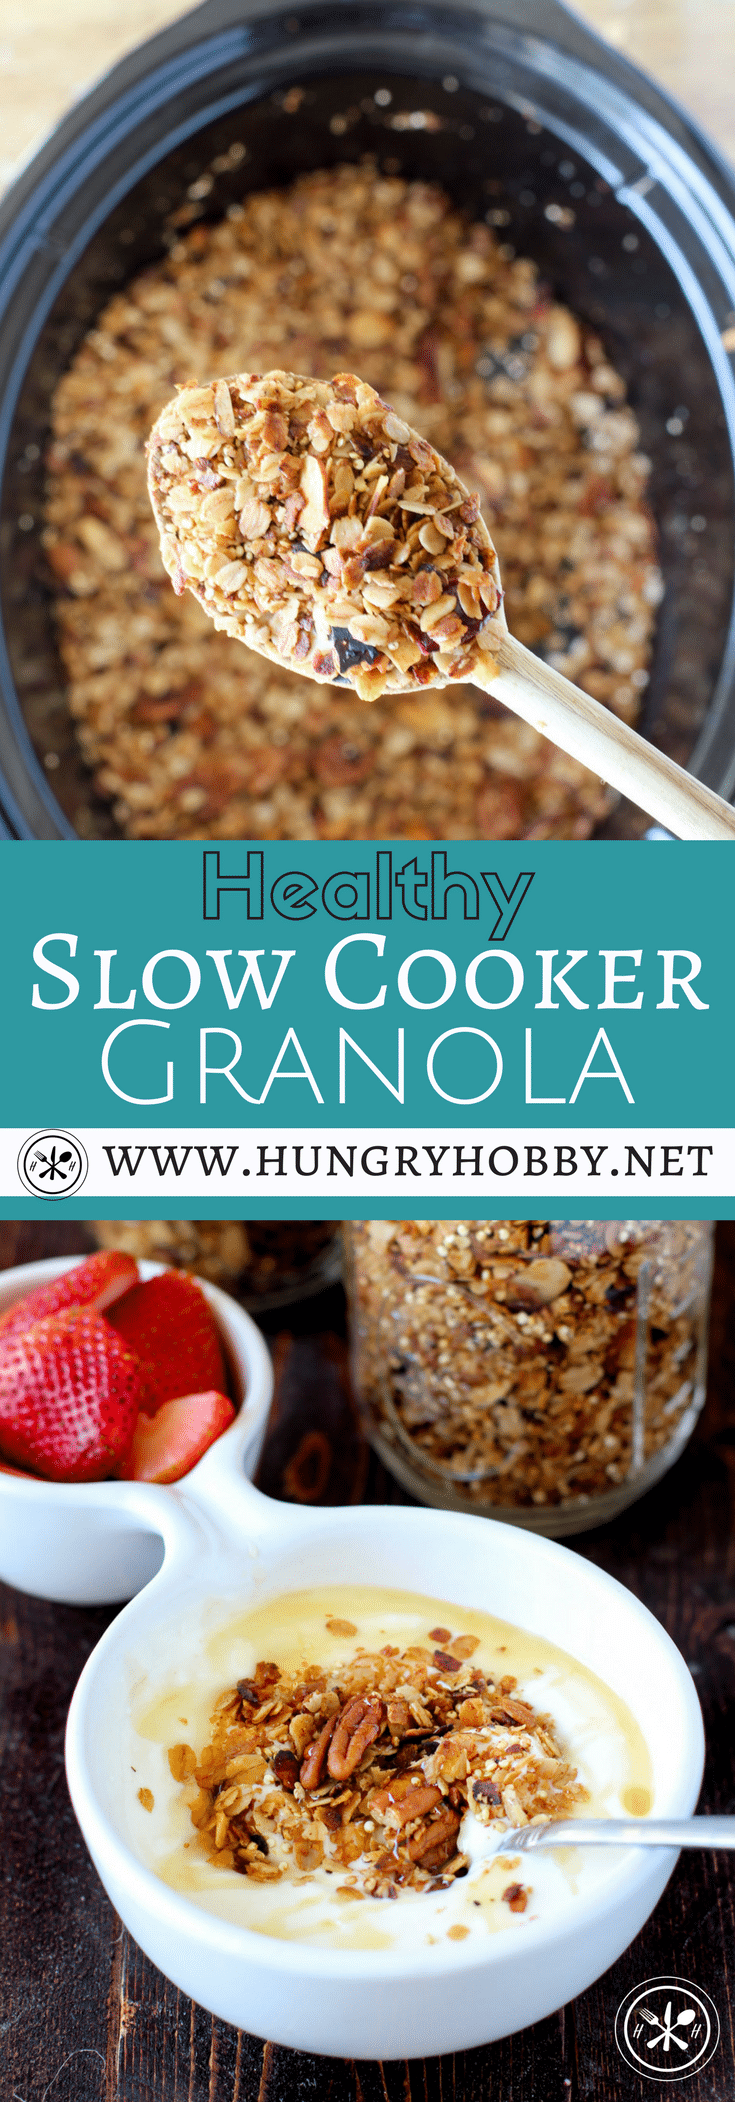 Who knew you could actually make granola in the slow cooker?!?!?! I tried it for you guys and I'm sharing the pros and cons of using this method to make delicious crunchy golden brown granola!  #hungryhobby #glutenfree #slowcooker #granola #healthy #recipes